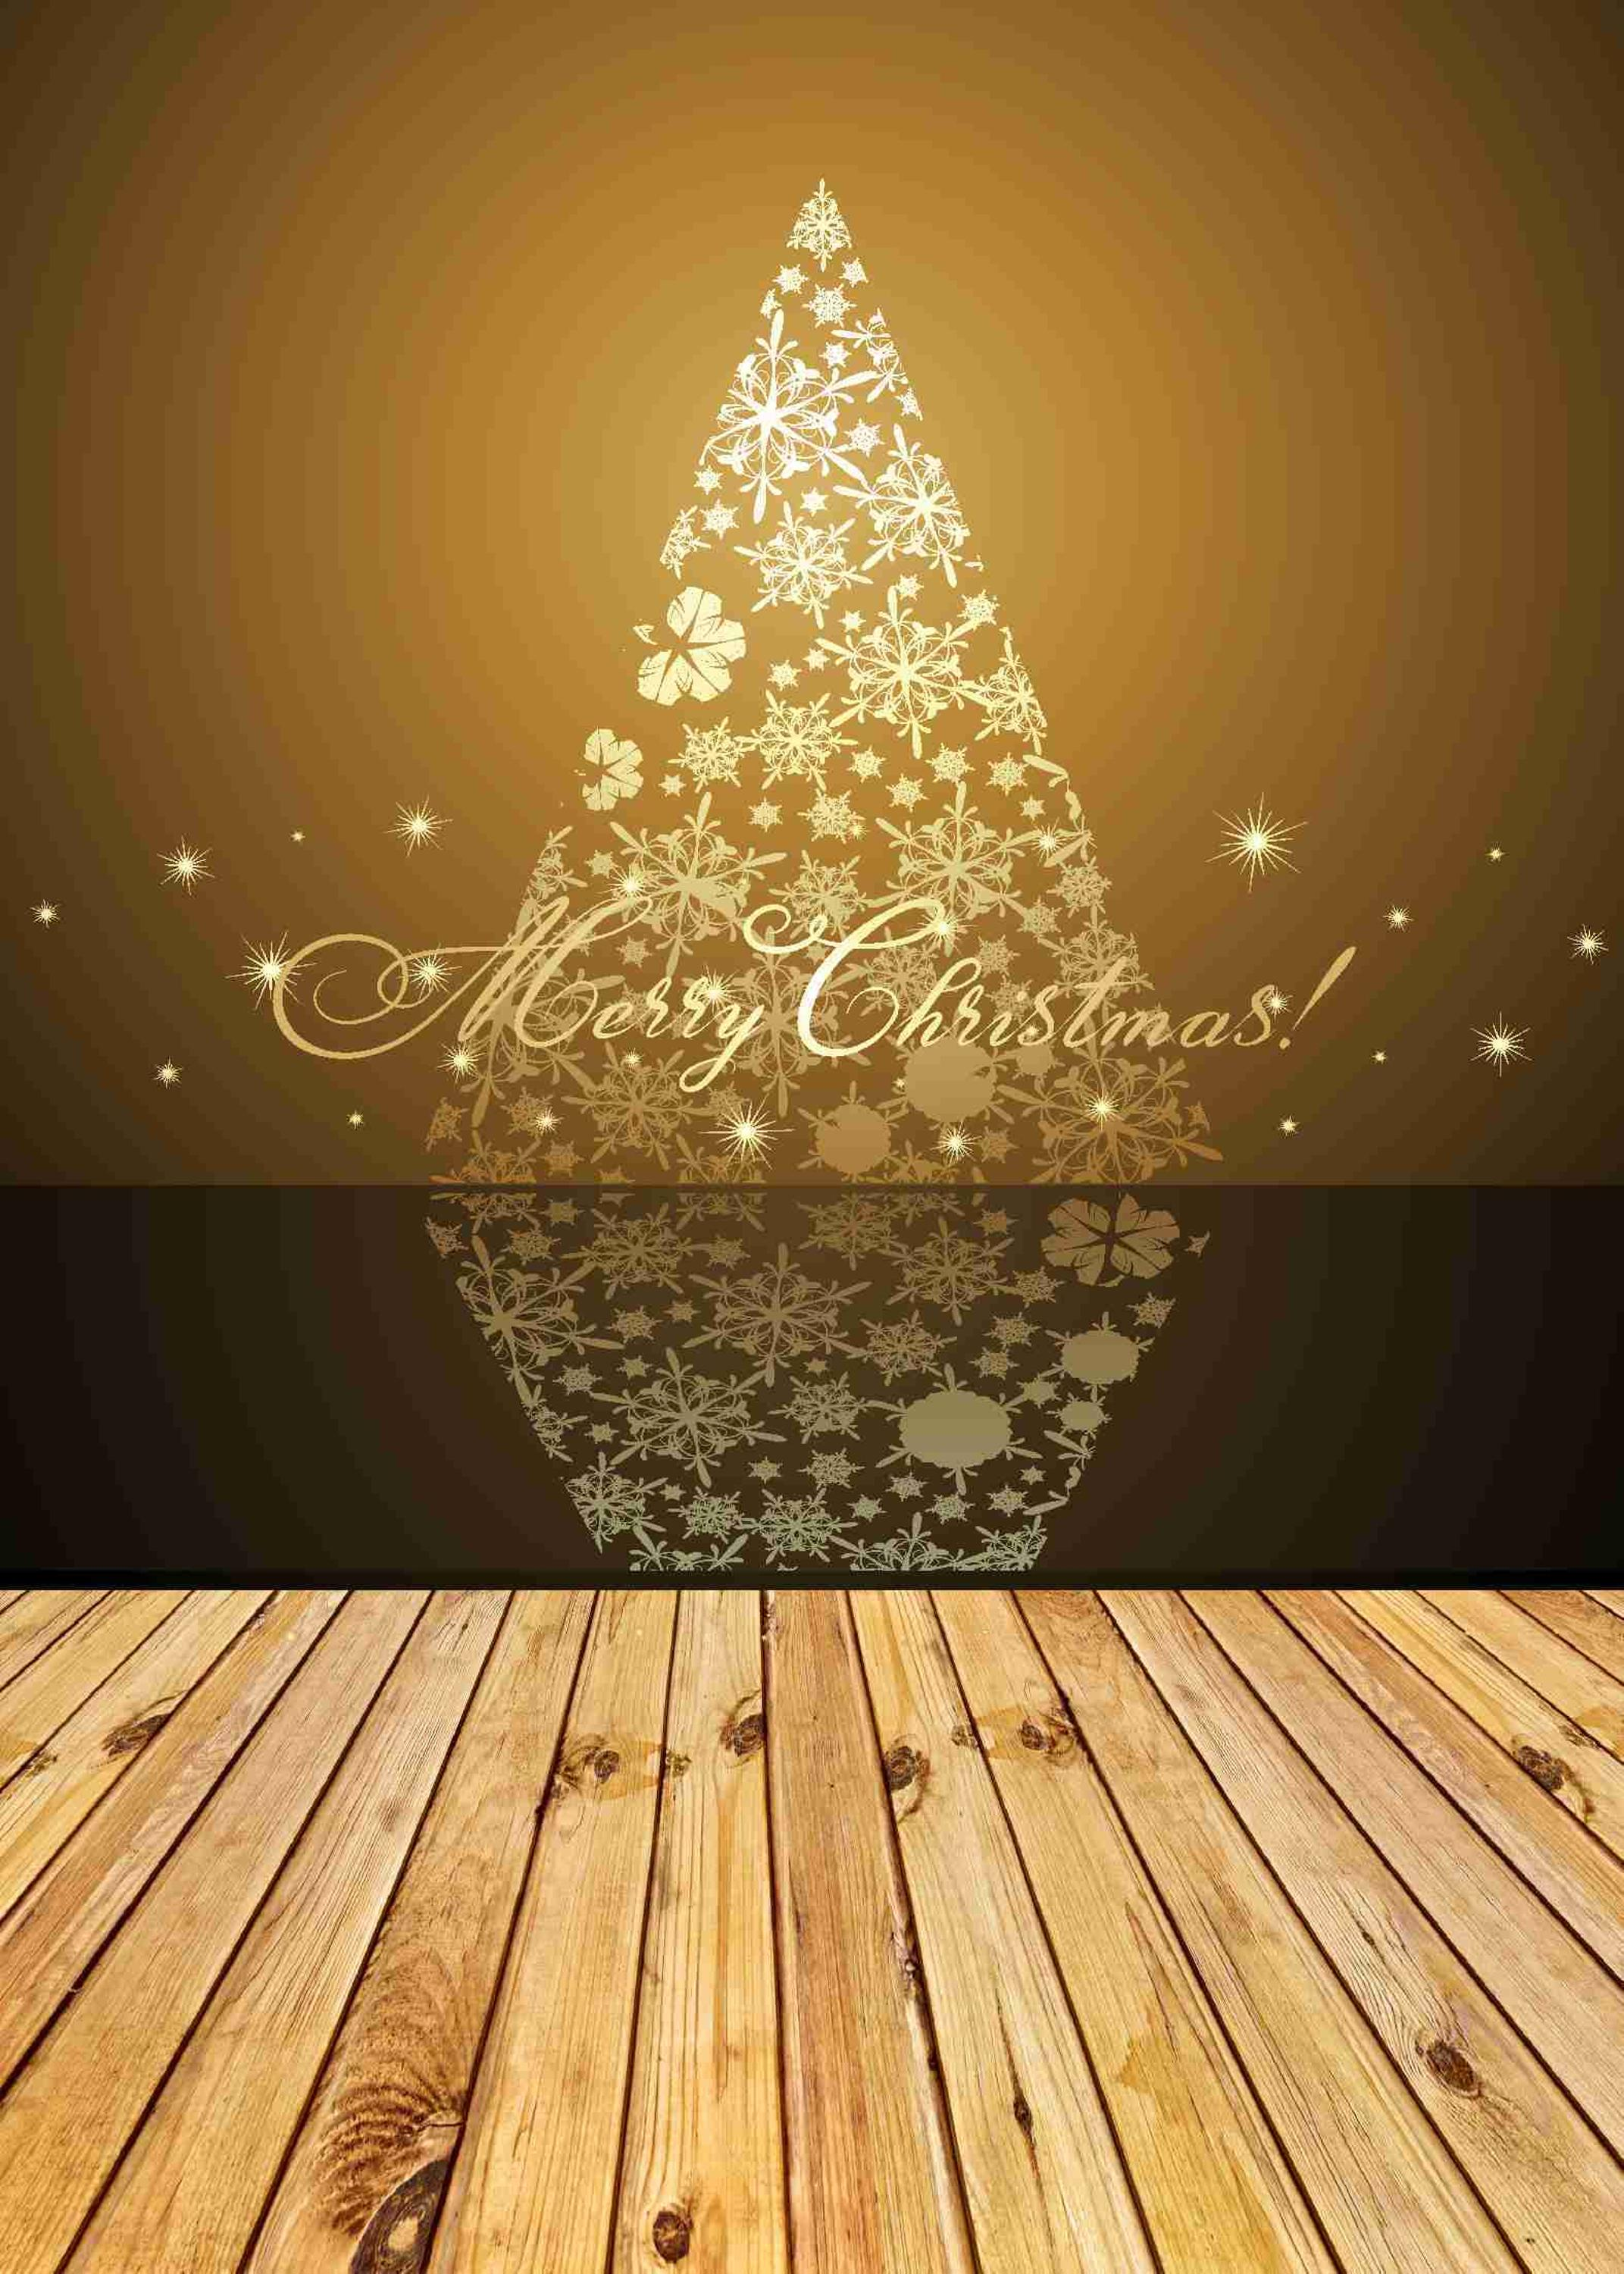 Photo Backdrops Merry Christmas for Baby Studio Props Vinyl Wooden Floor Photography Background 5x7ft or 3x5ft Jiesdx119 custom photography background christmas vinyl photografia backdrops 300cm 400cm hot sell photo studio props baby l824